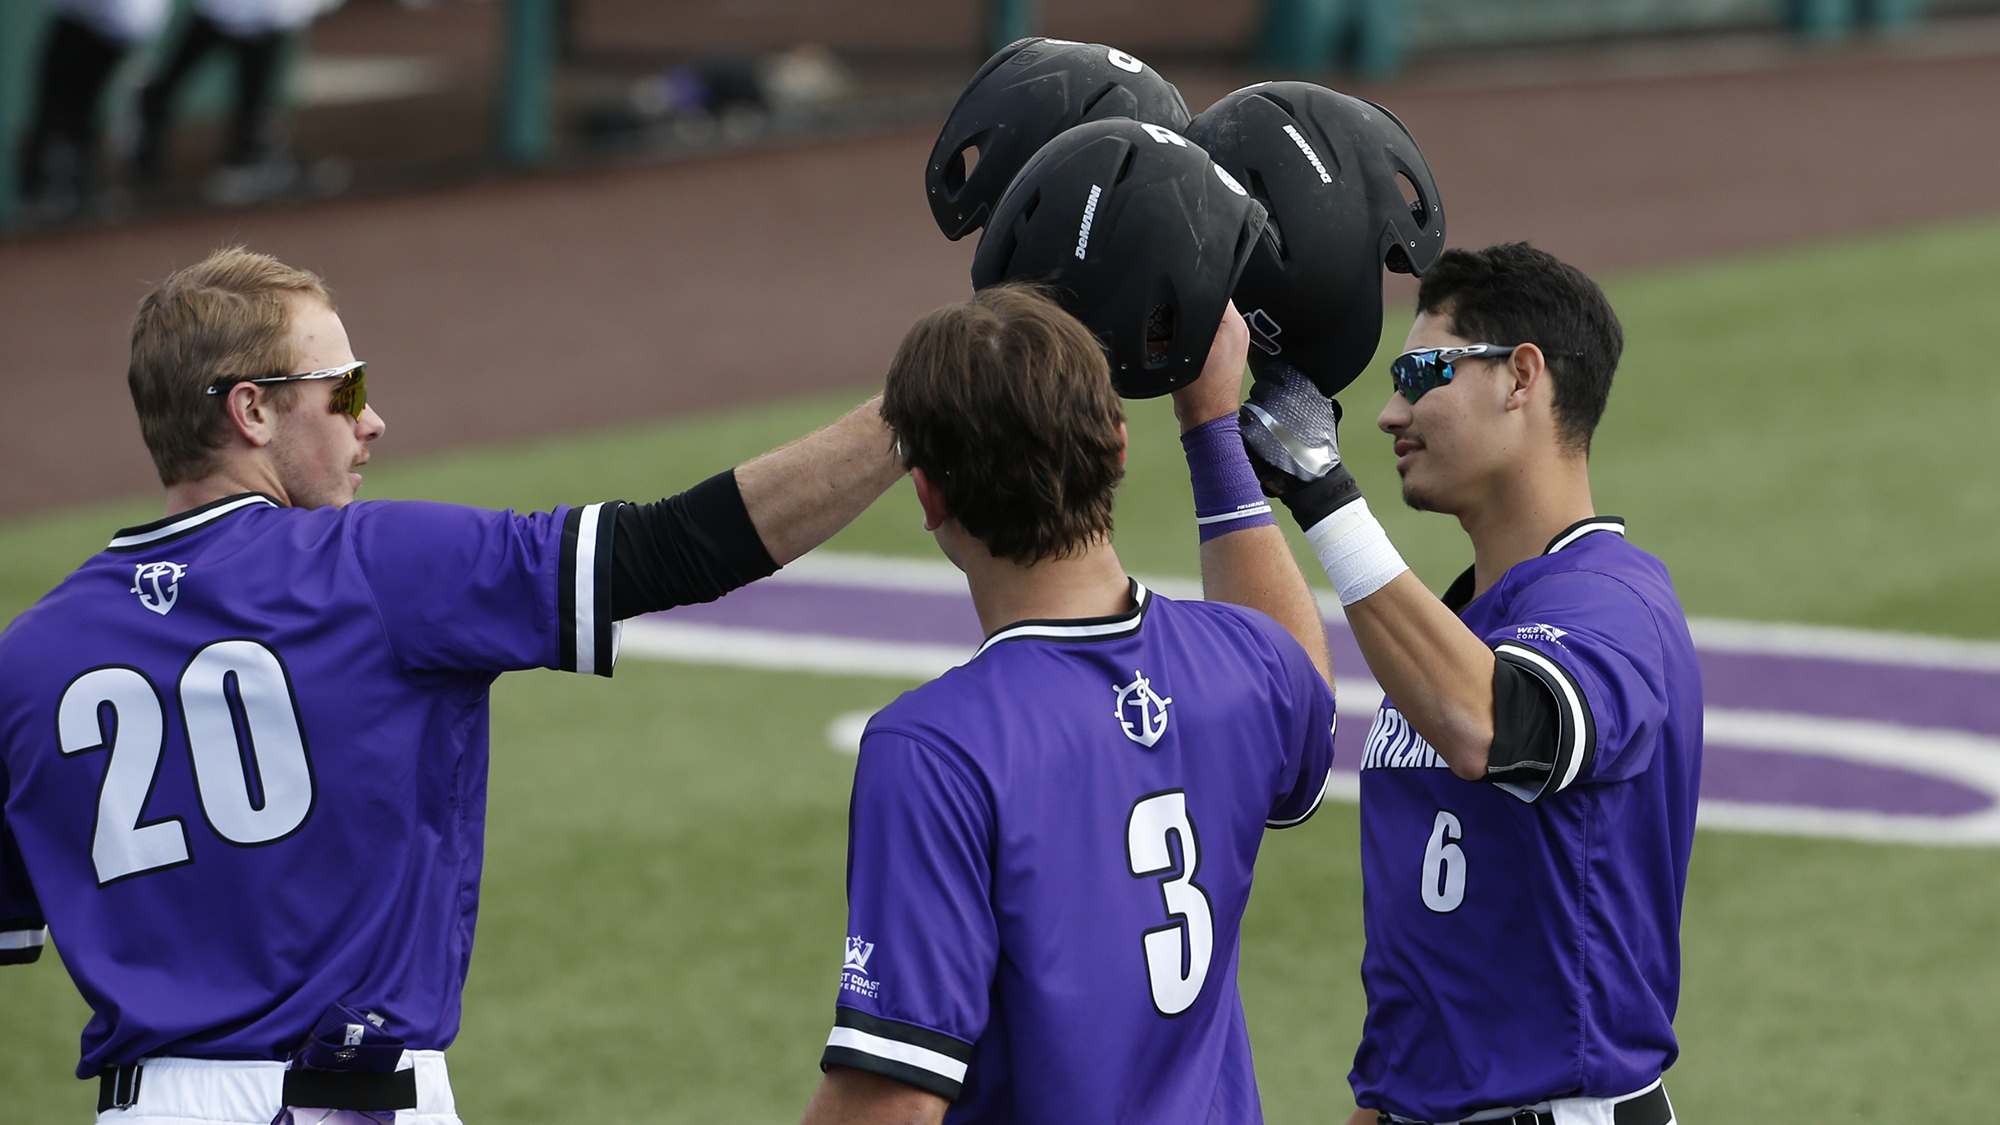 Kelly has Seven RBI's as the Pilots Explode for a 20-2 Win at USF